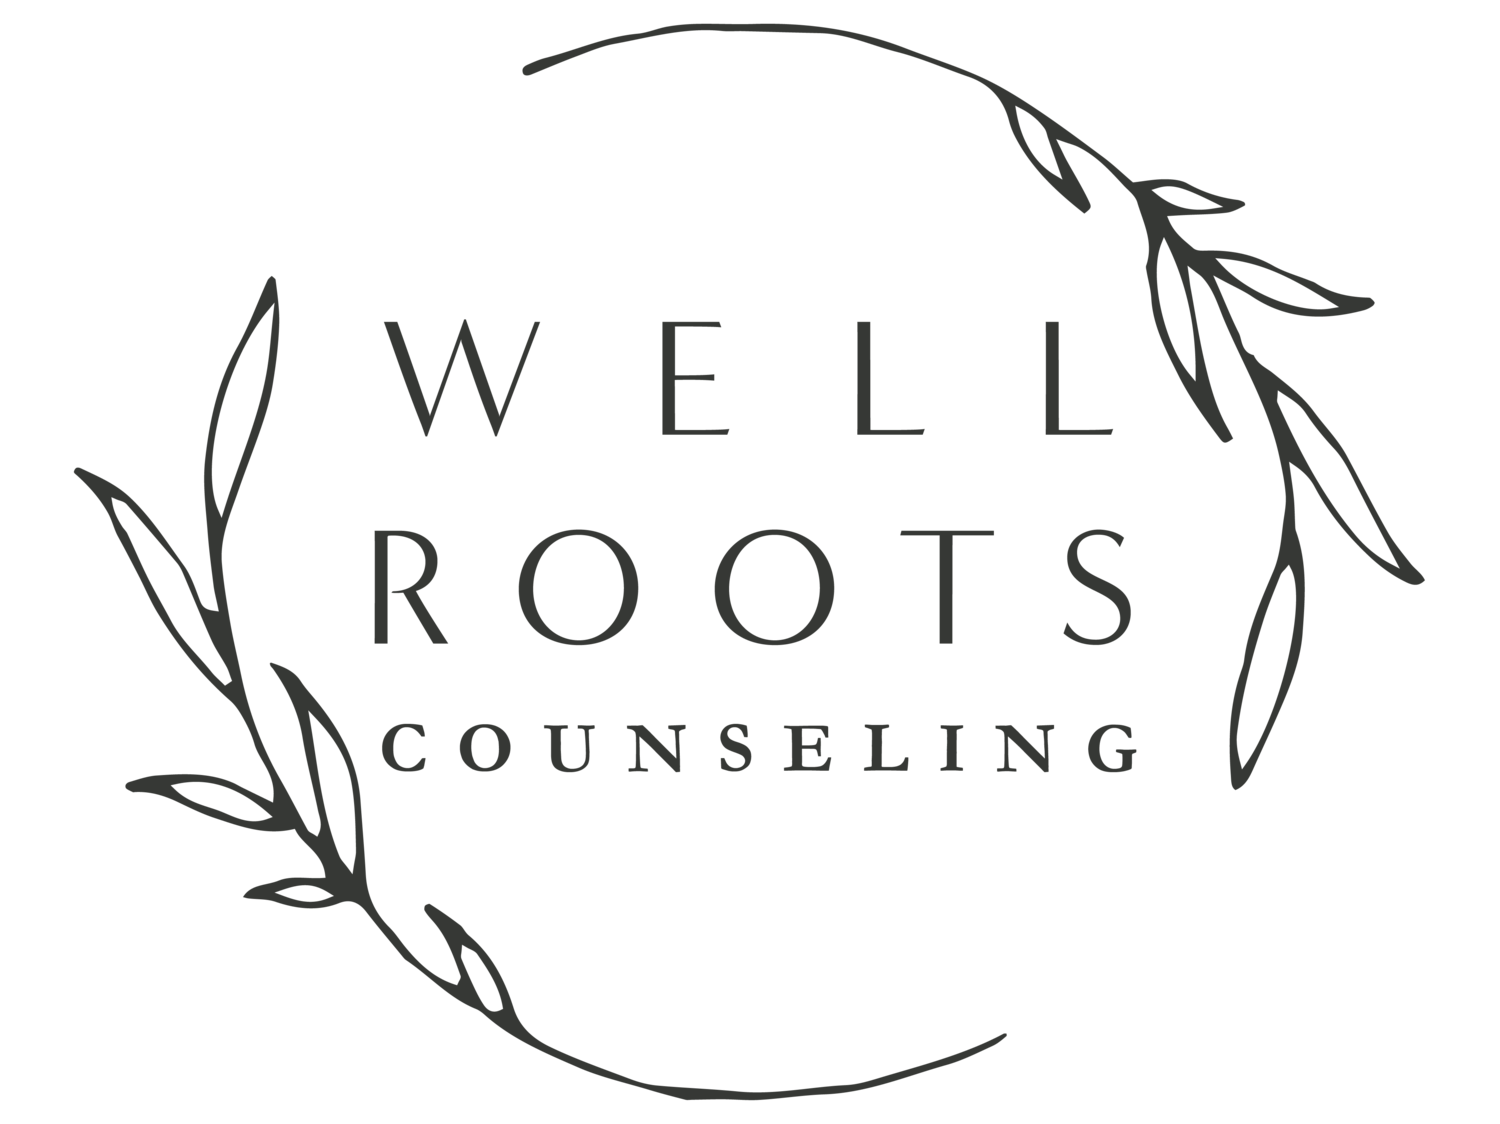 About — Well Roots Counseling.